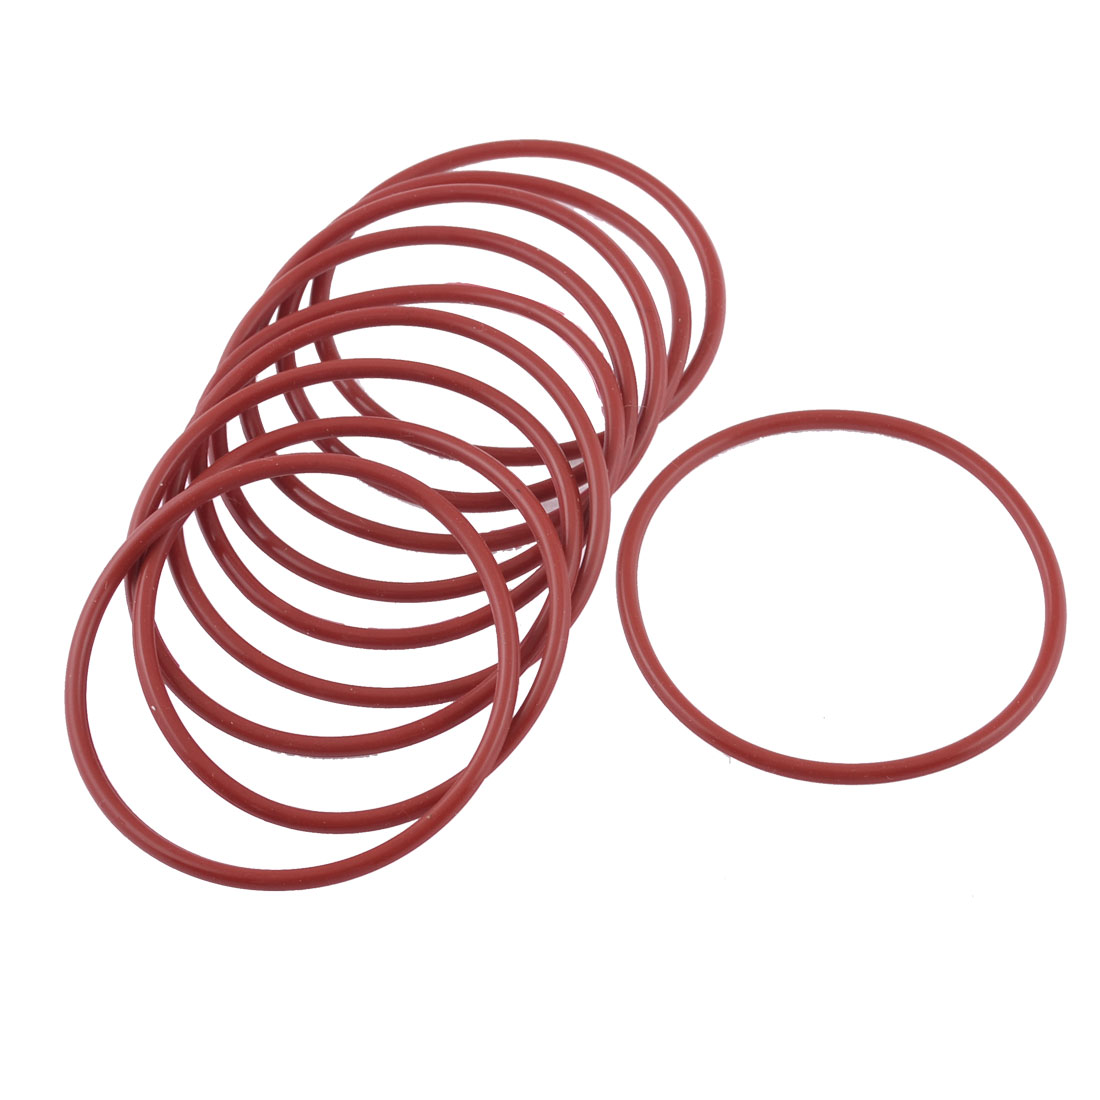 10 Pcs Red Rubber 53mm x 2.5mm x 48mm Oil Seal O Rings Gaskets Washers